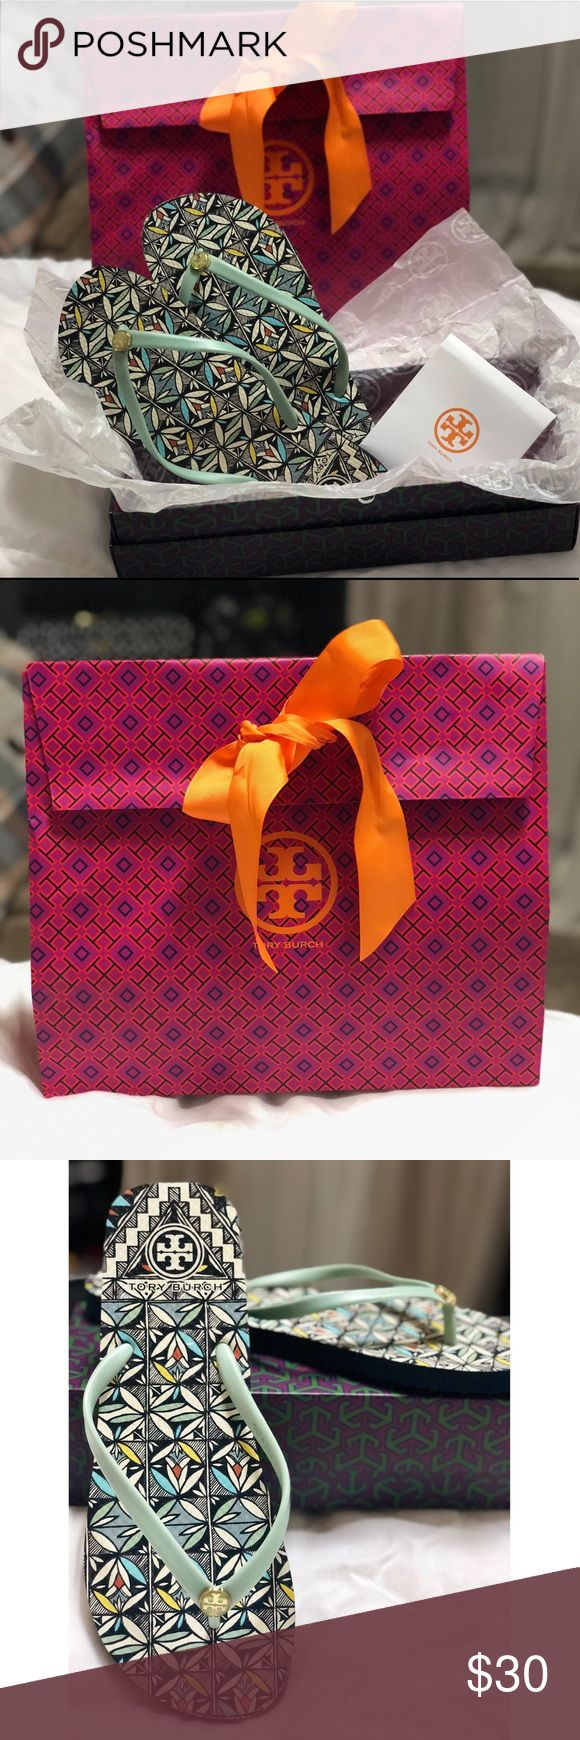 Tory Burch rubber flip flops Thin, floral print, rubber flip flop. Lightly used, but look like new! Comes with original shoe box and gift bag. Tory Burch Shoes Sandals